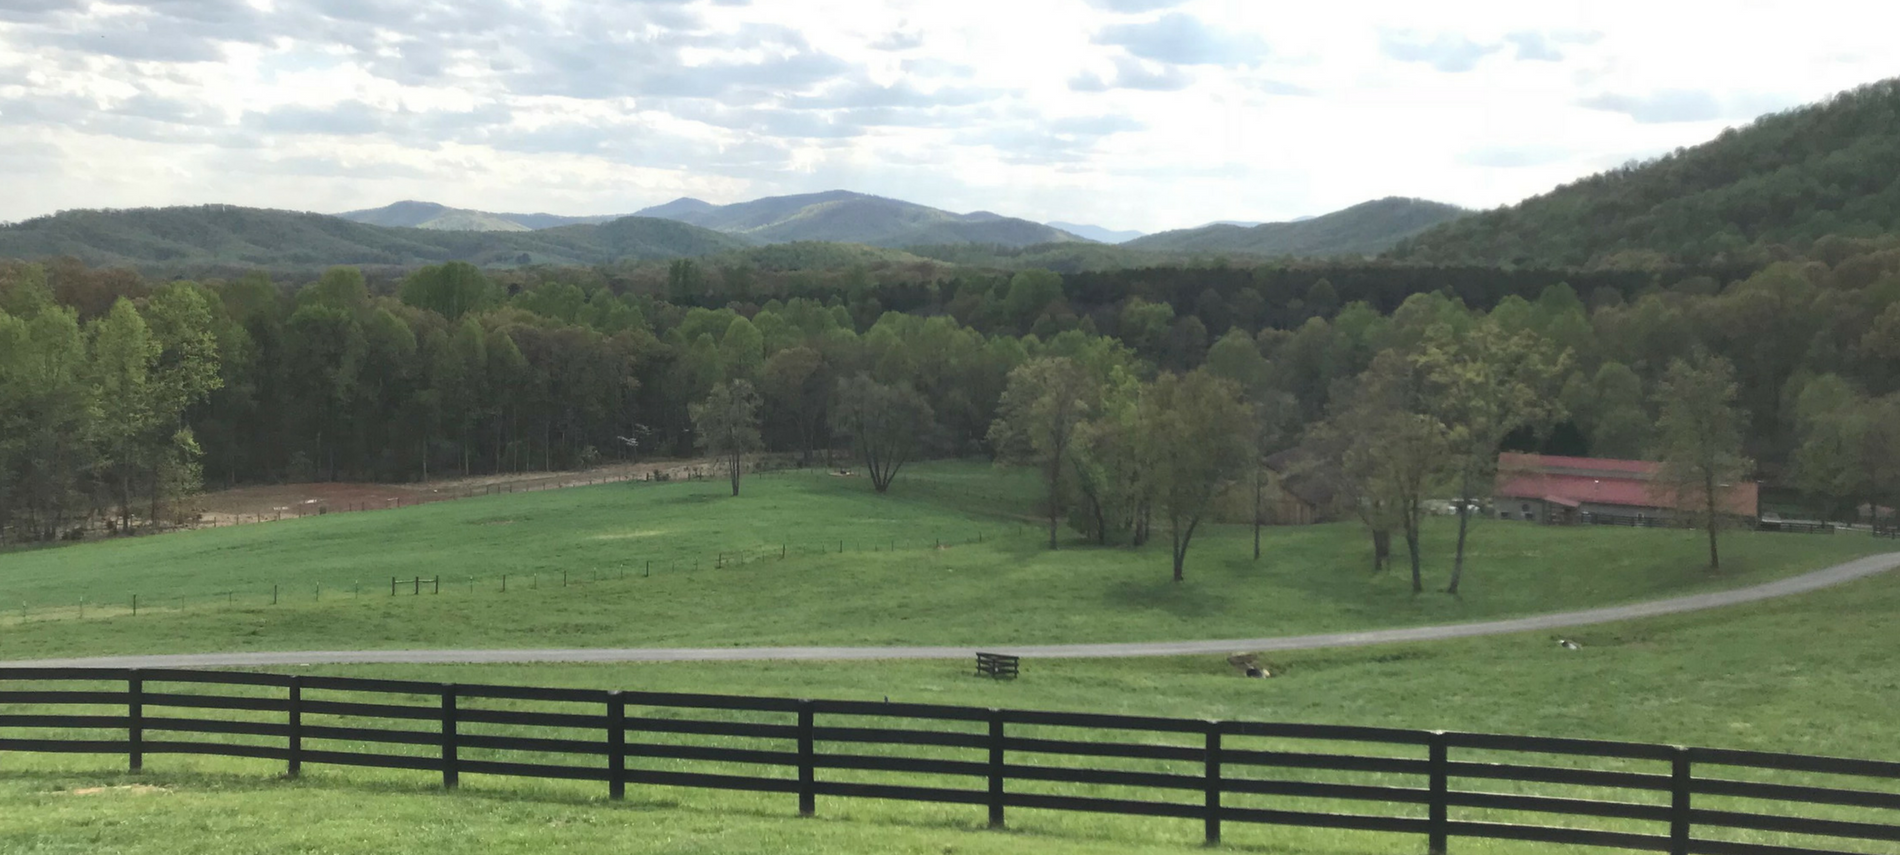 green field, black horse fence, dirt road beyond fence and red roof low barn, lots of green trees in background and foothills of the Blue Ridge